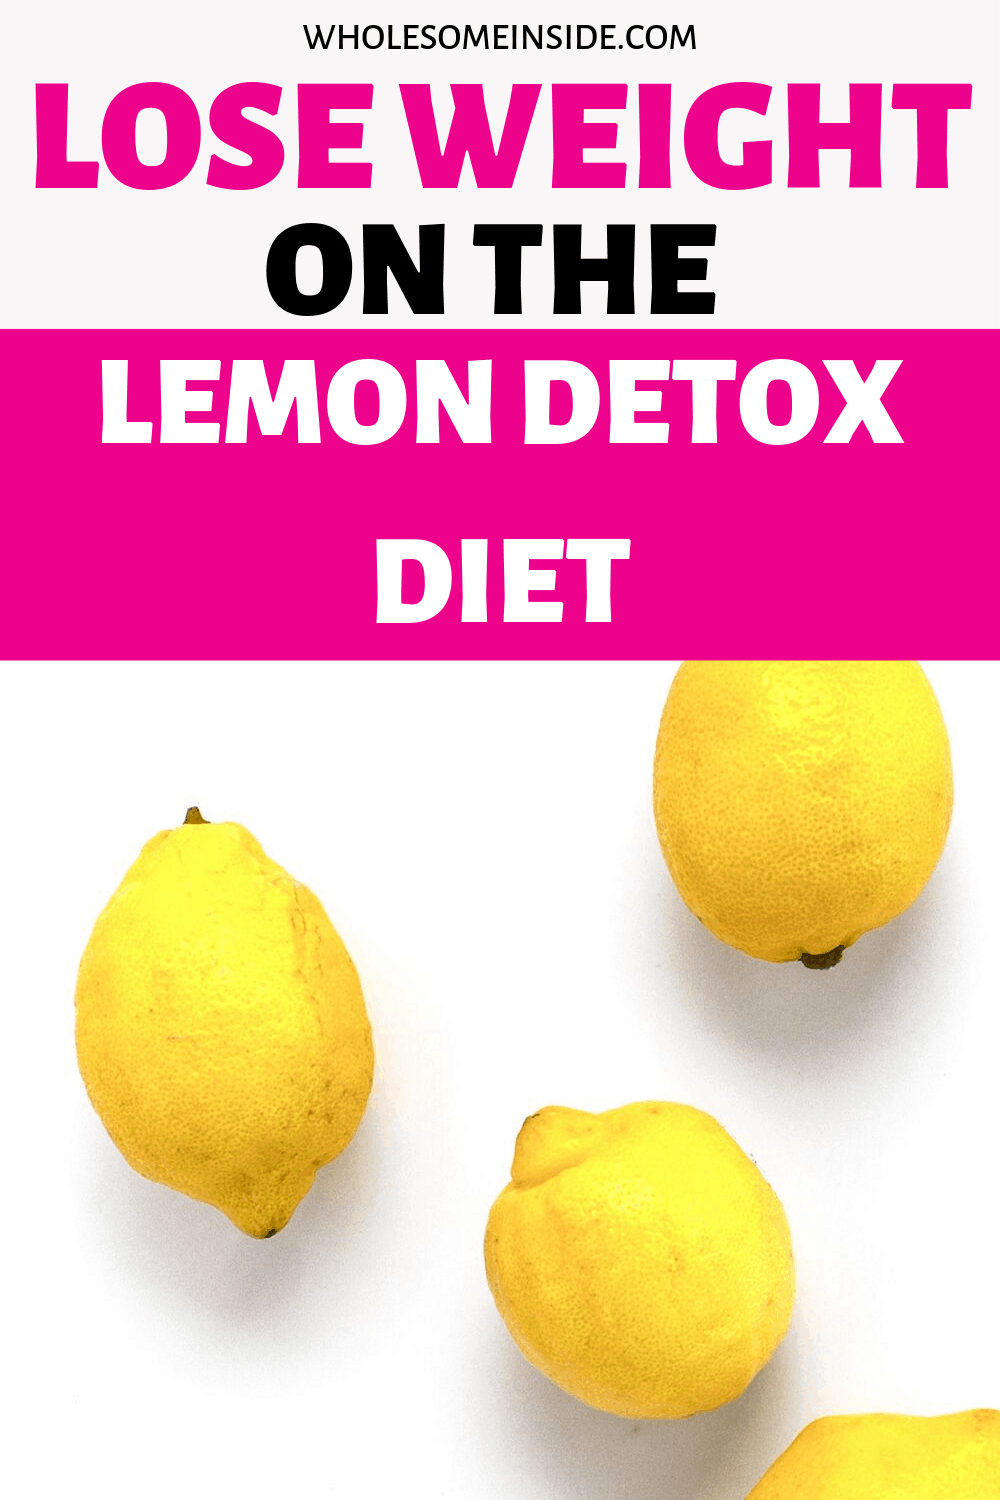 The lemon detox diet to lose weight. The recipe for the master cleanse